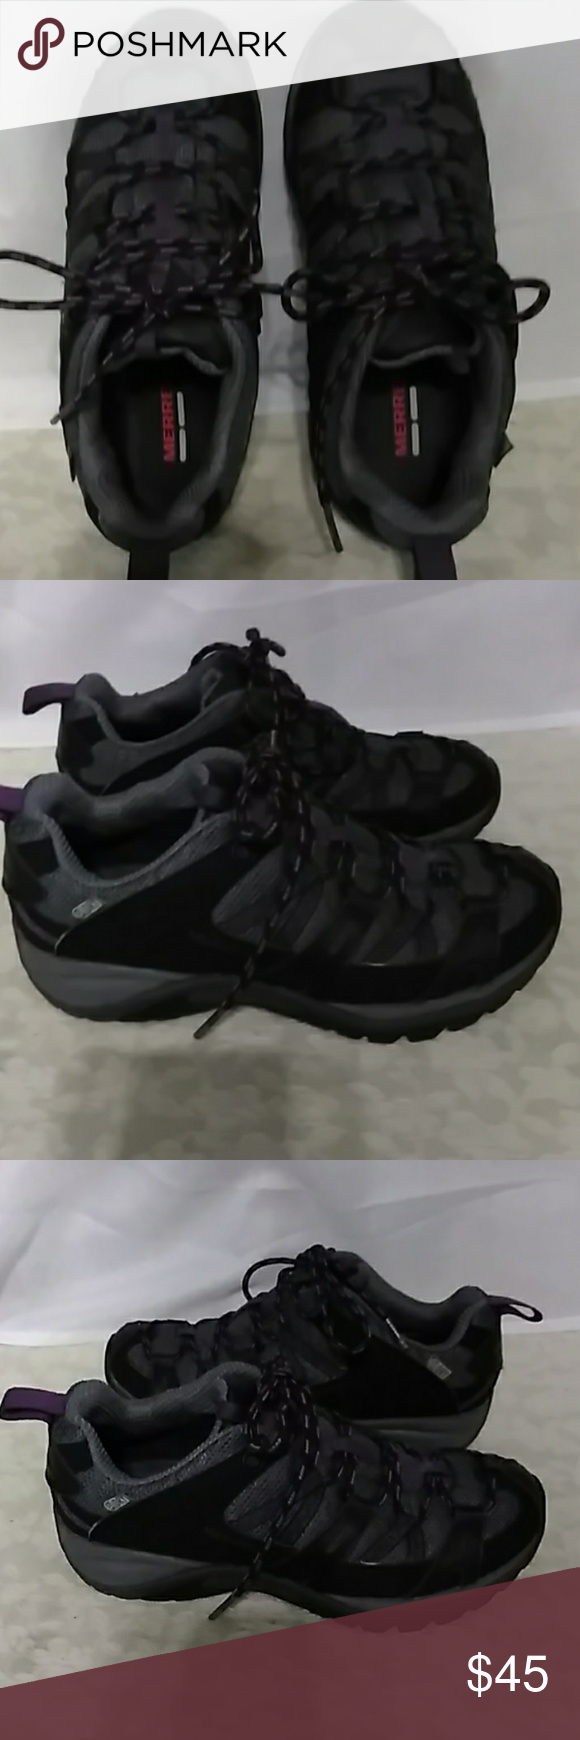 57a86e8139 Merrell Damson Siren Sport 2 Womens black hiking trail outdoors. They are  in EUC. Colors of black, grey, and purple. Merrell Shoes Athletic Shoes